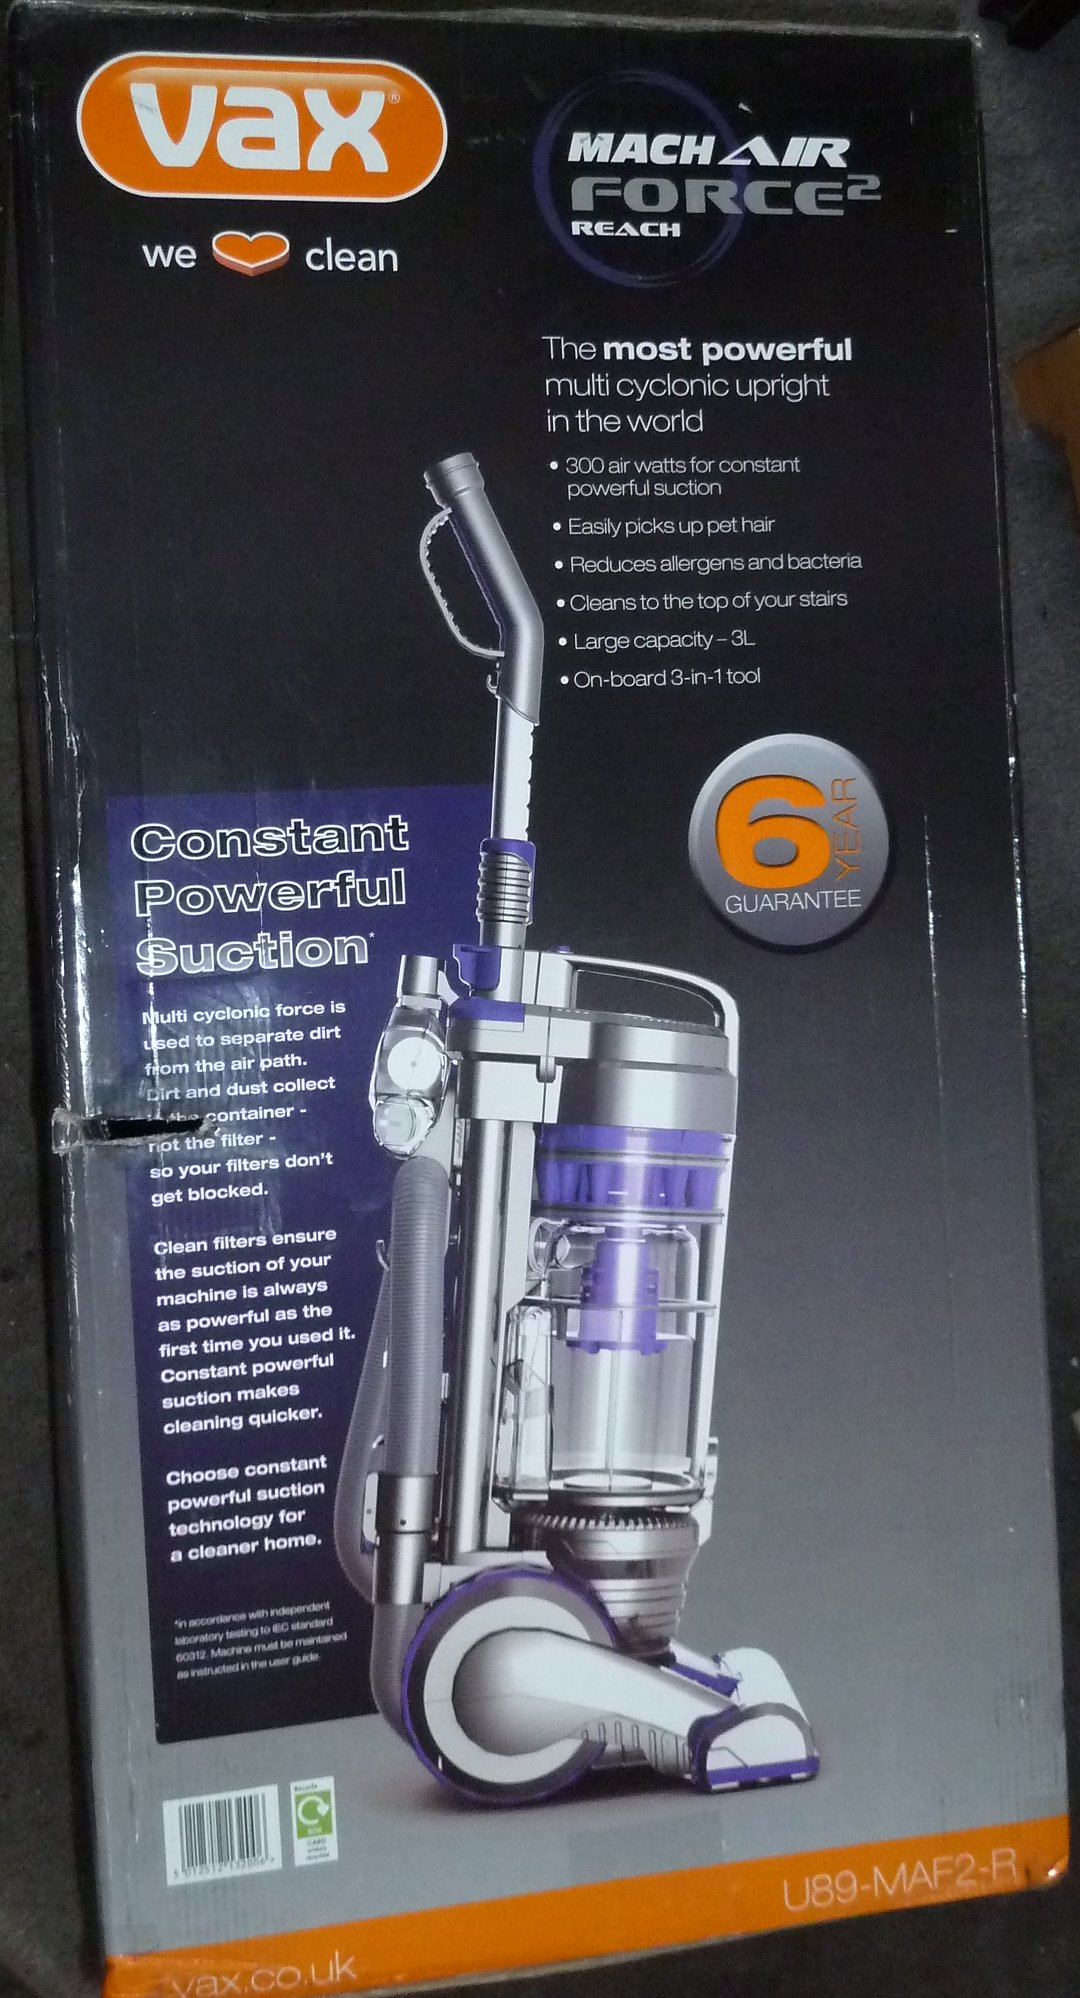 Vax Air Force 2 Reach Vacuum Cleaner